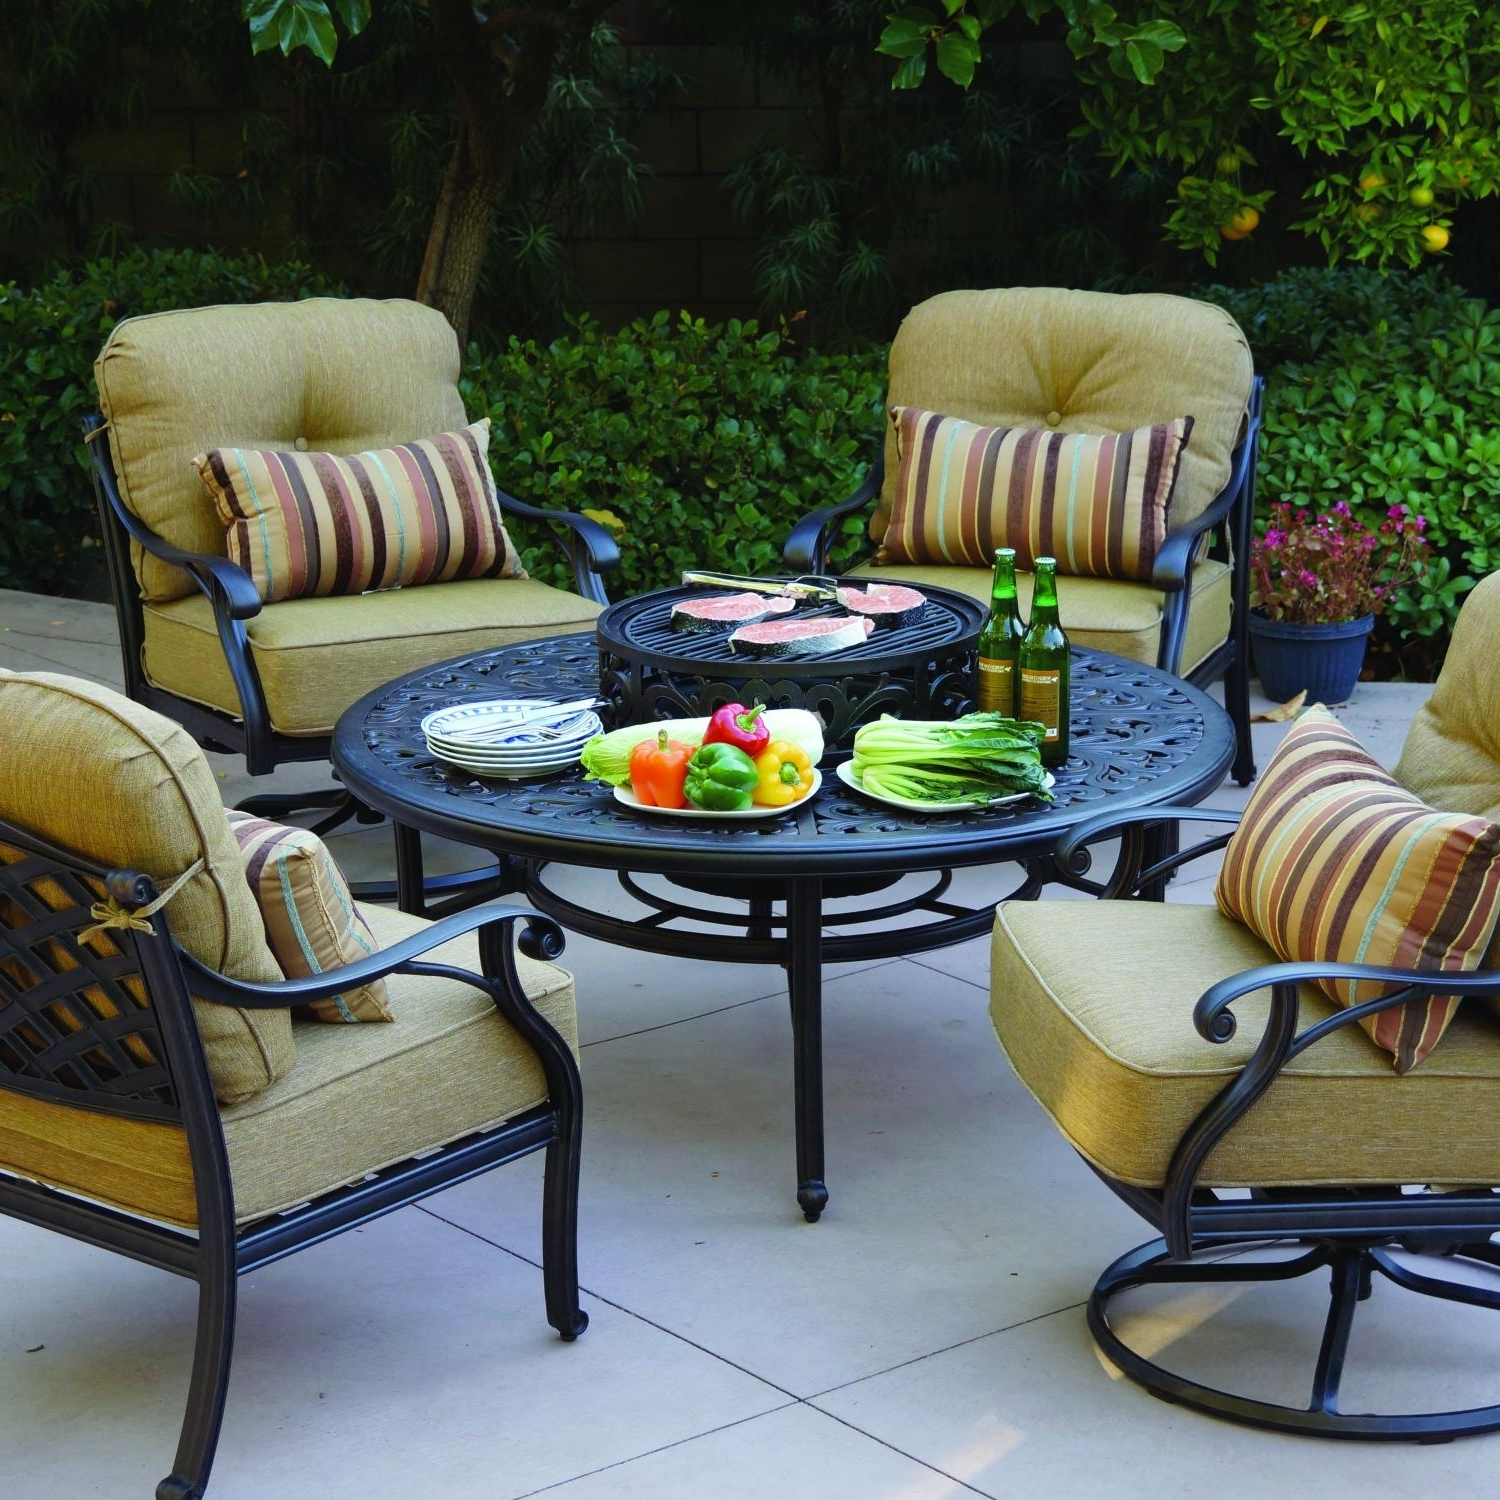 Trendy Patio Furniture Conversation Sets With Fire Pit With Regard To Darlee Nassau 5 Piece Patio Fire Pit Conversation Seating Set (View 4 of 15)